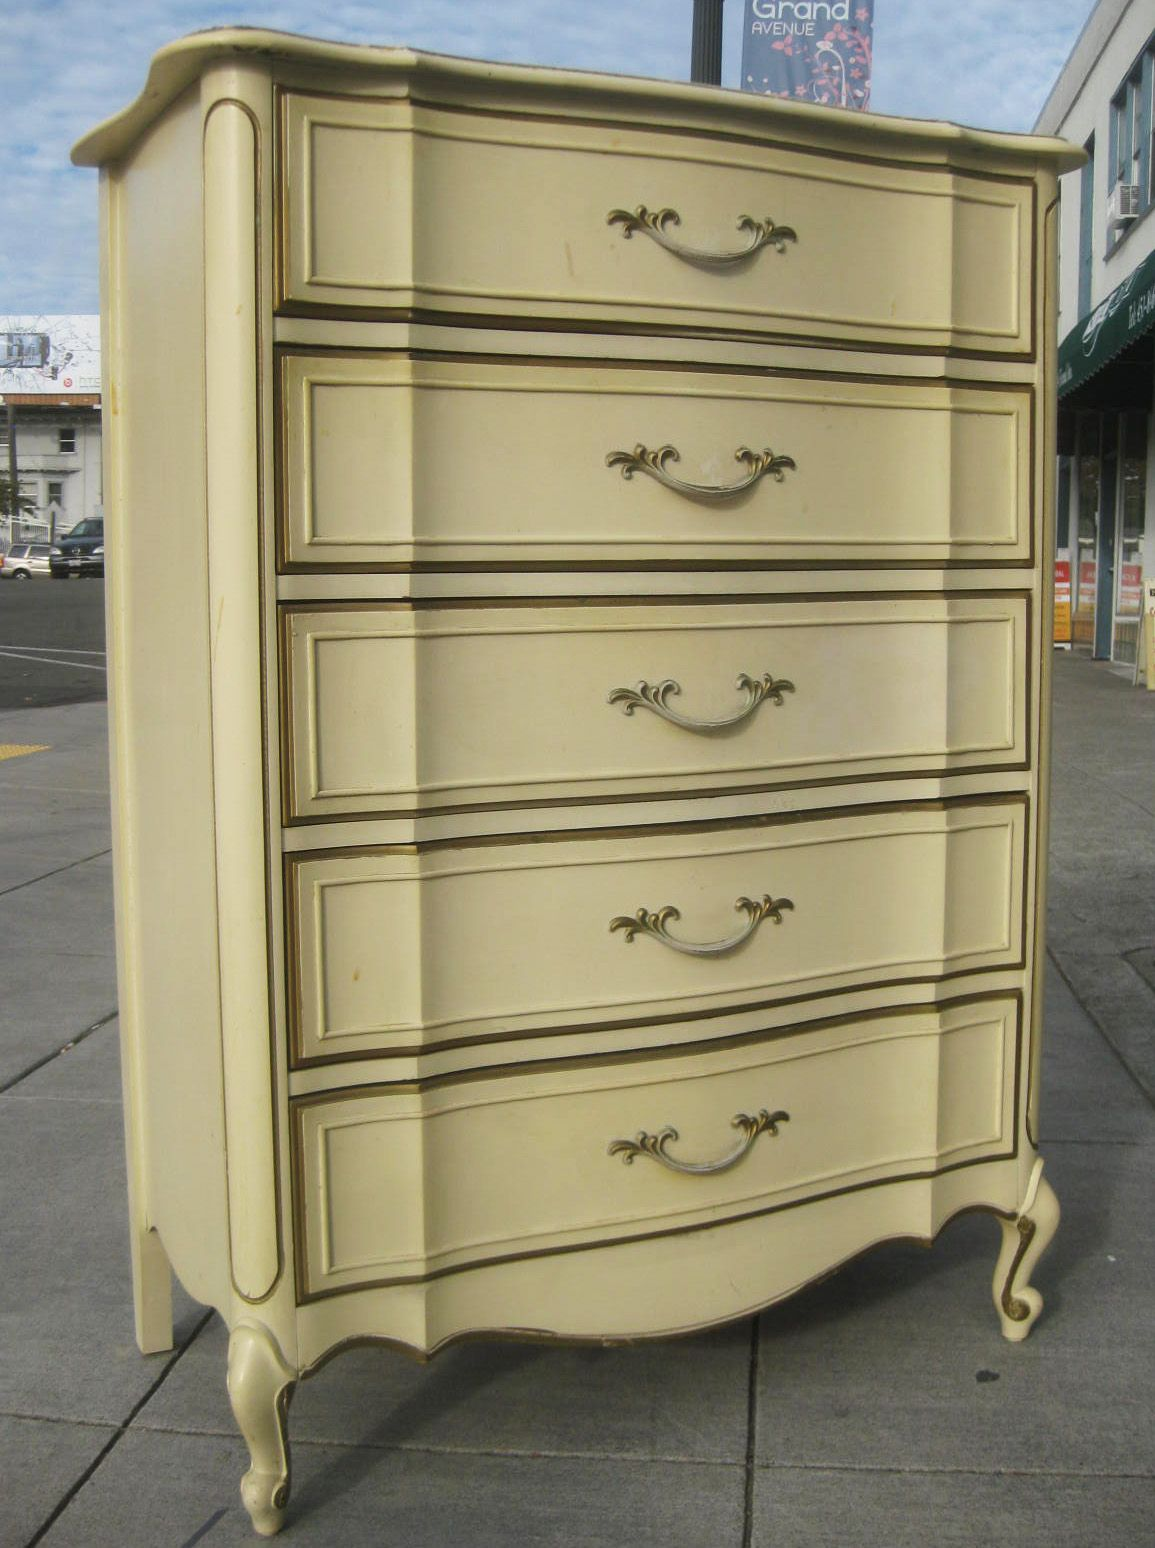 UHURU FURNITURE & COLLECTIBLES SOLD French Provincial Chest of Drawers